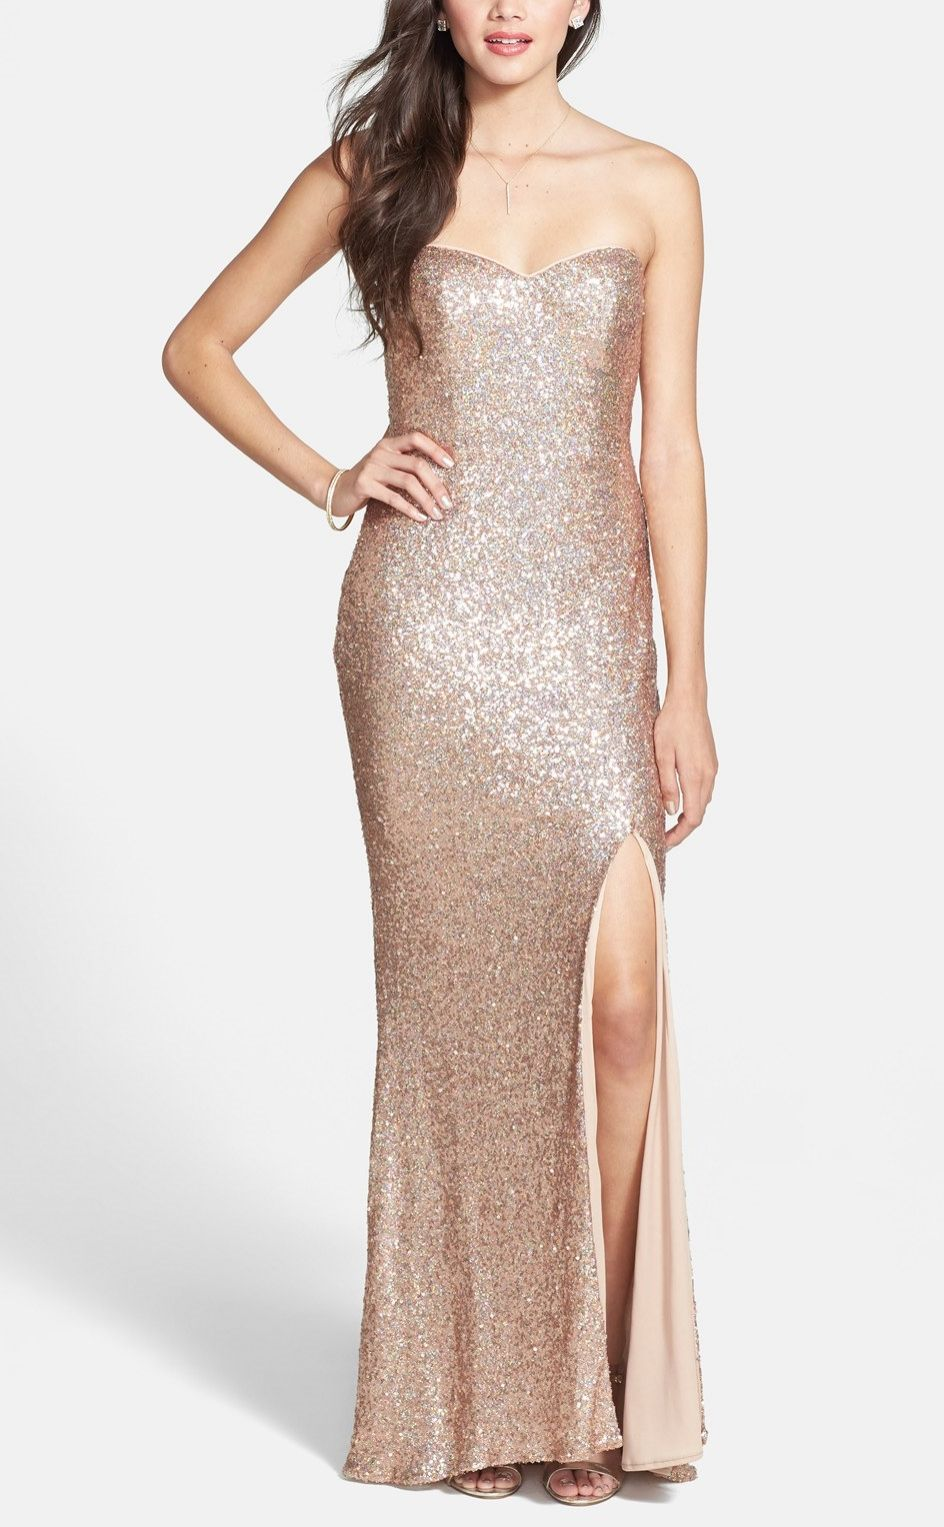 This champagne colored sequin gown would be stunning for prom ...